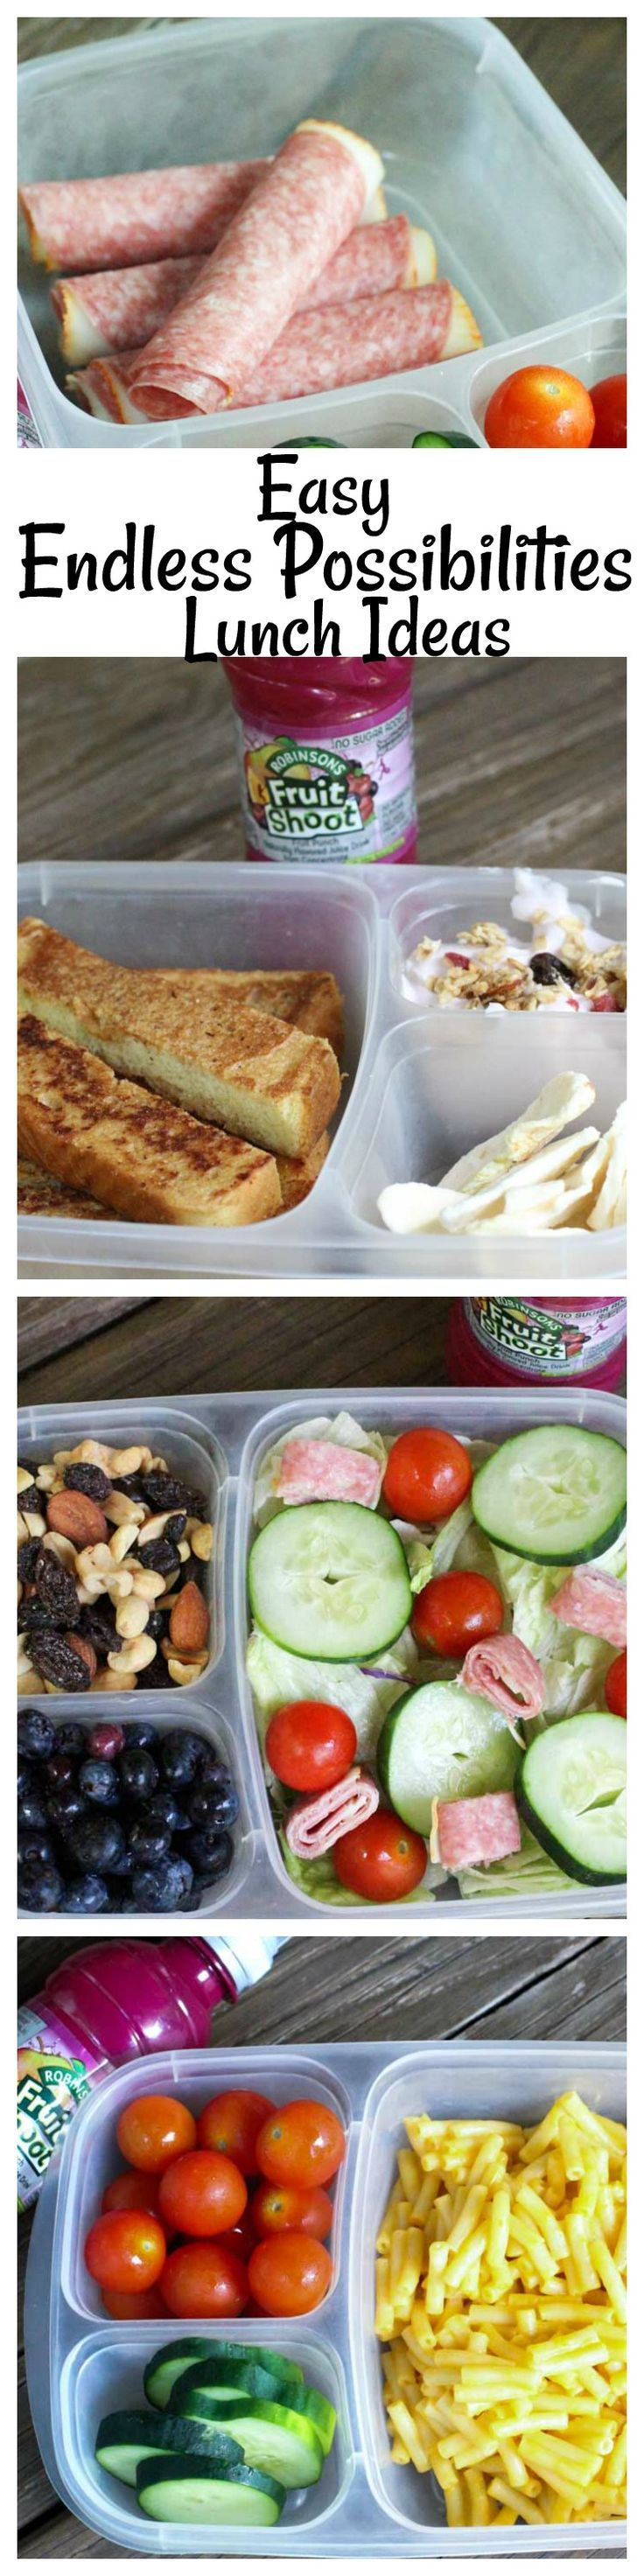 Don't get stuck in the back to school rut! Endless possibility lunch ideas are here to help you! Easy back to school lunches that are tasty and healthy for the kids!